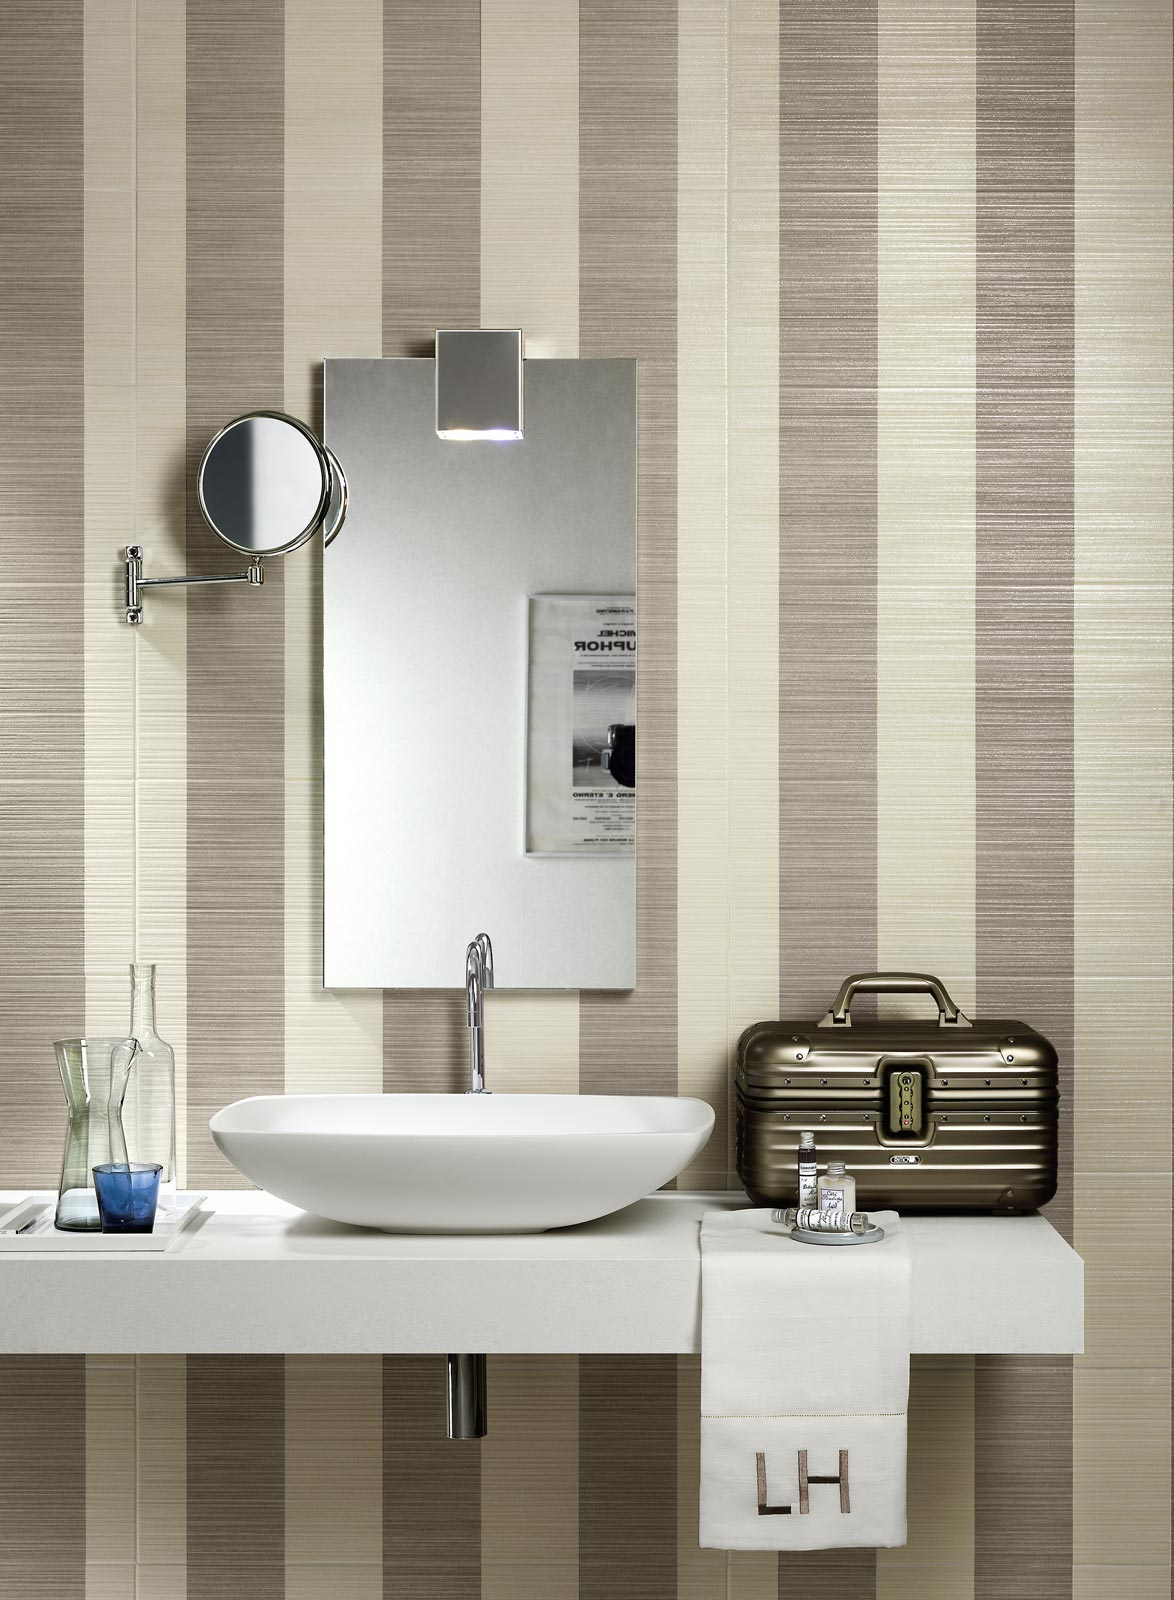 Wallpaper Collection: elegatìnt tiles for walls and bathrooms | Ragno